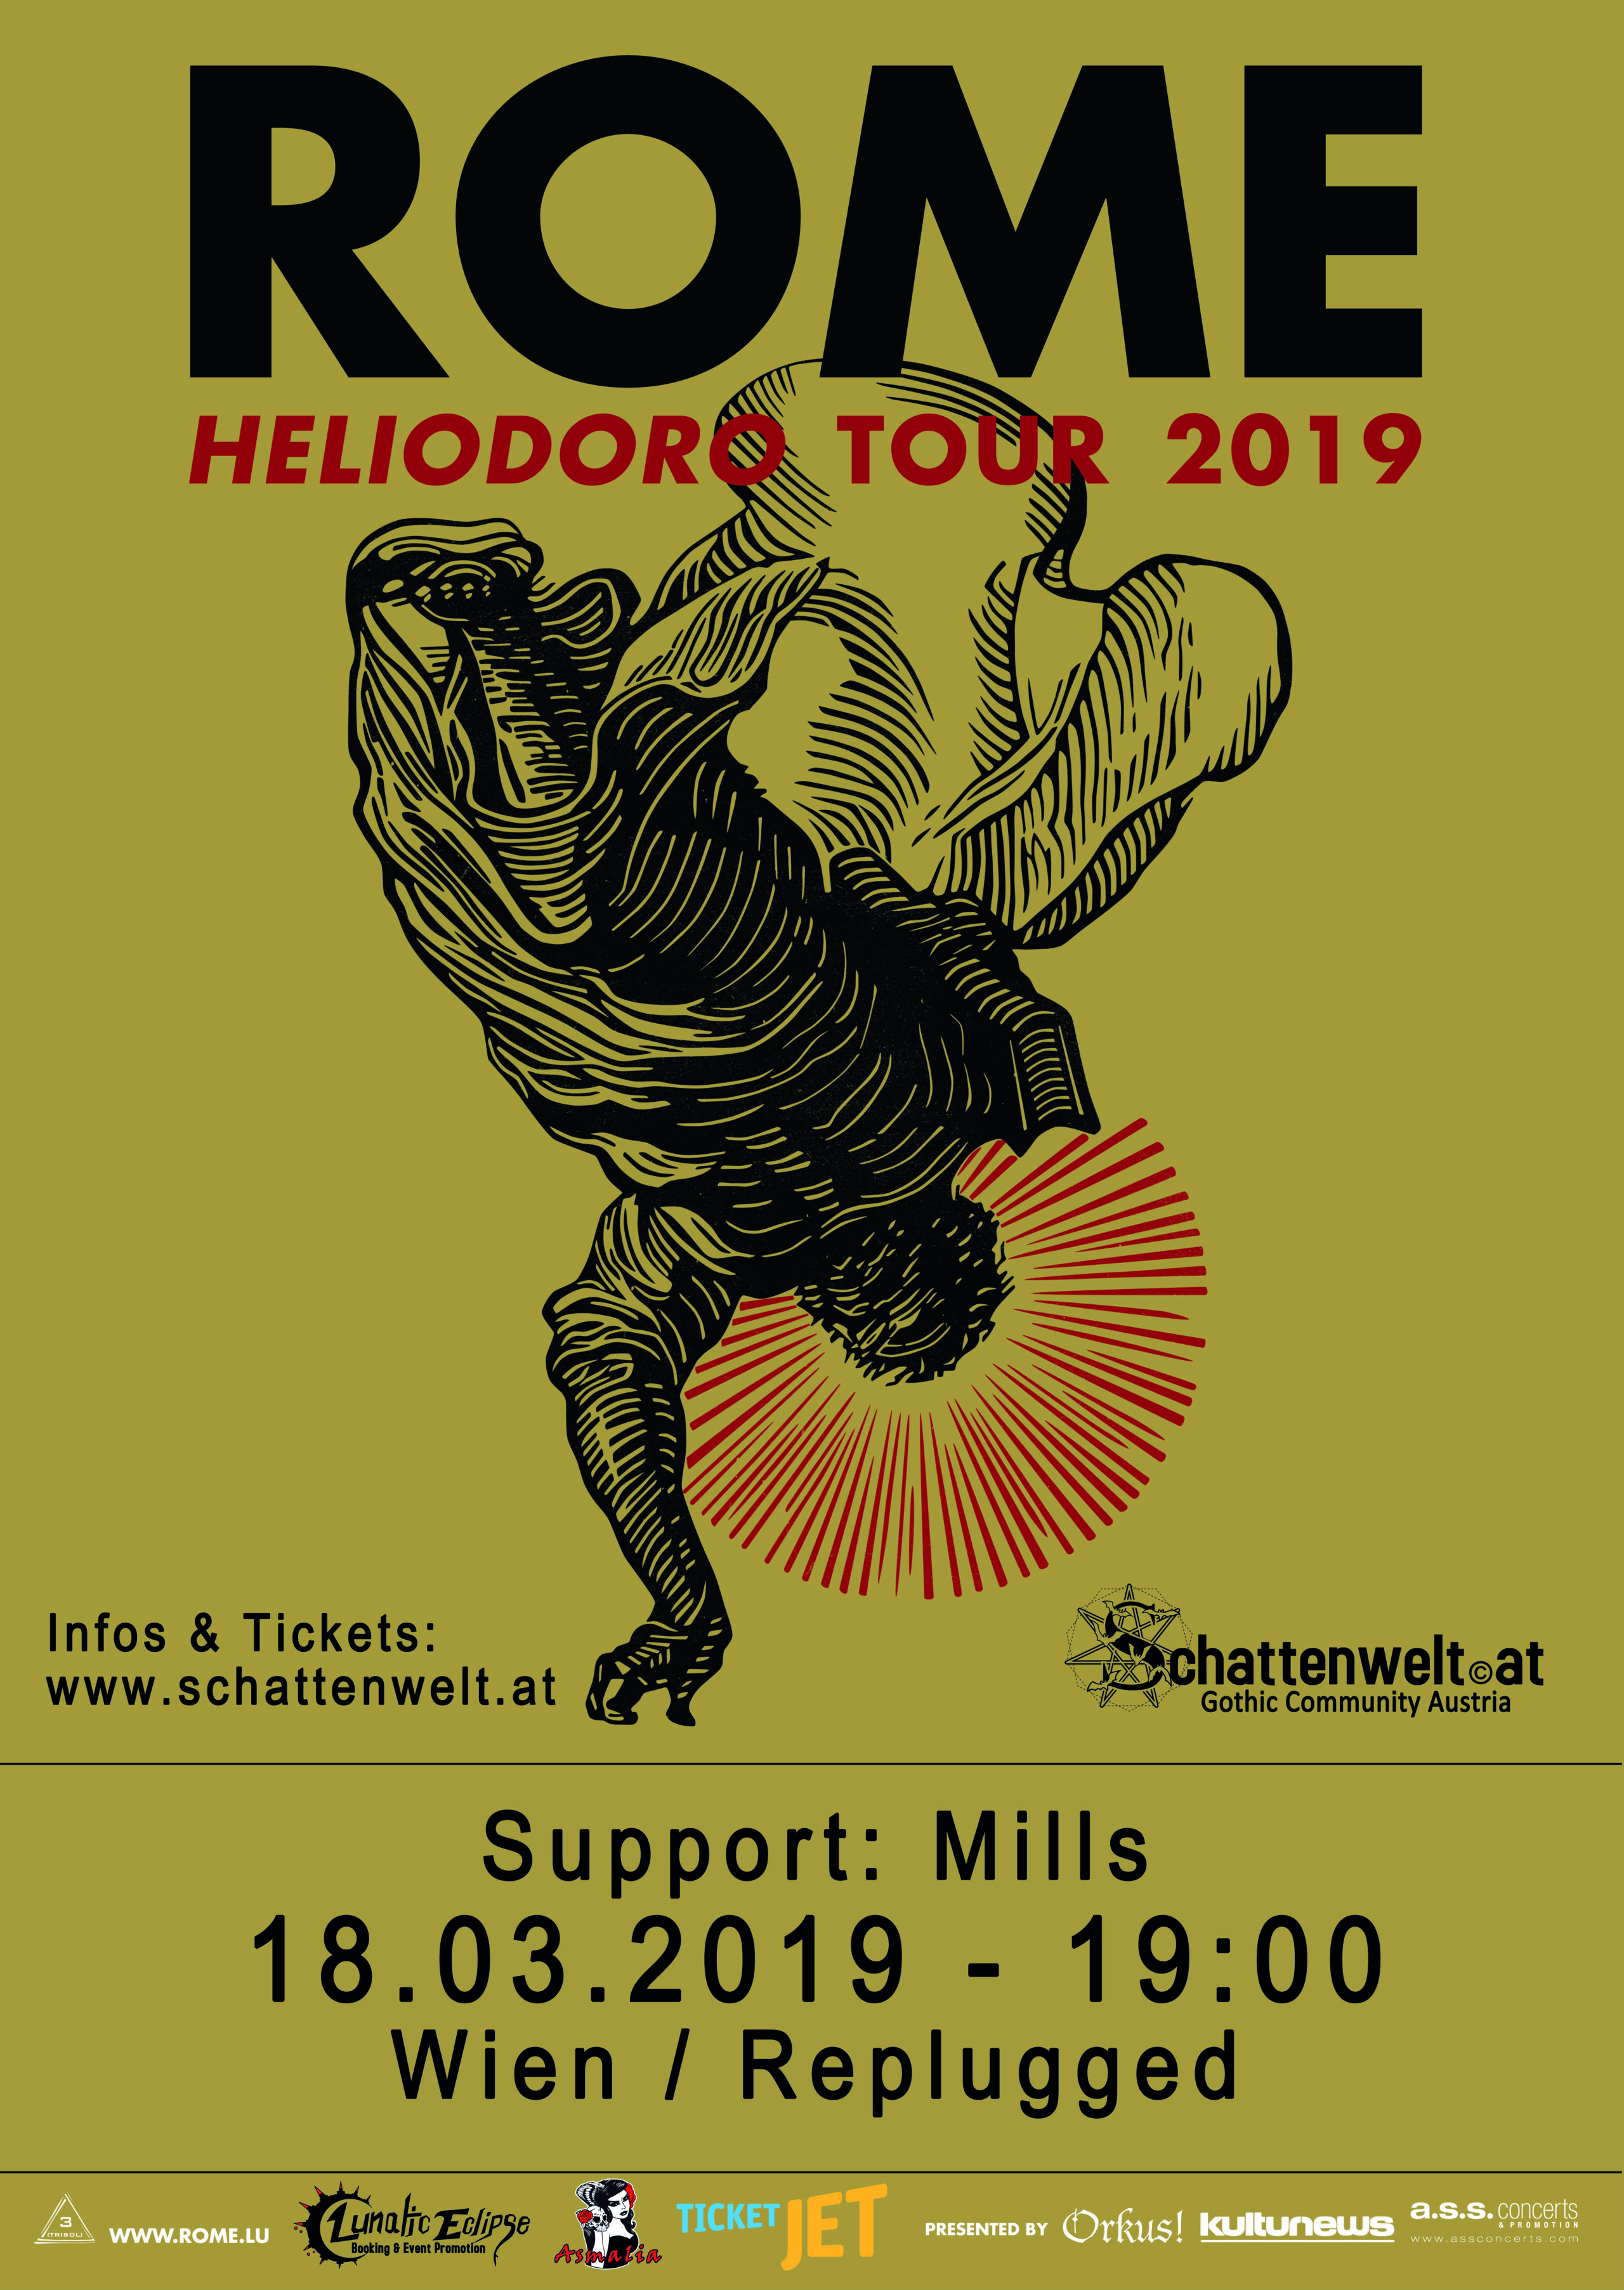 ROME - Heliodoro Tour / Support: Mills